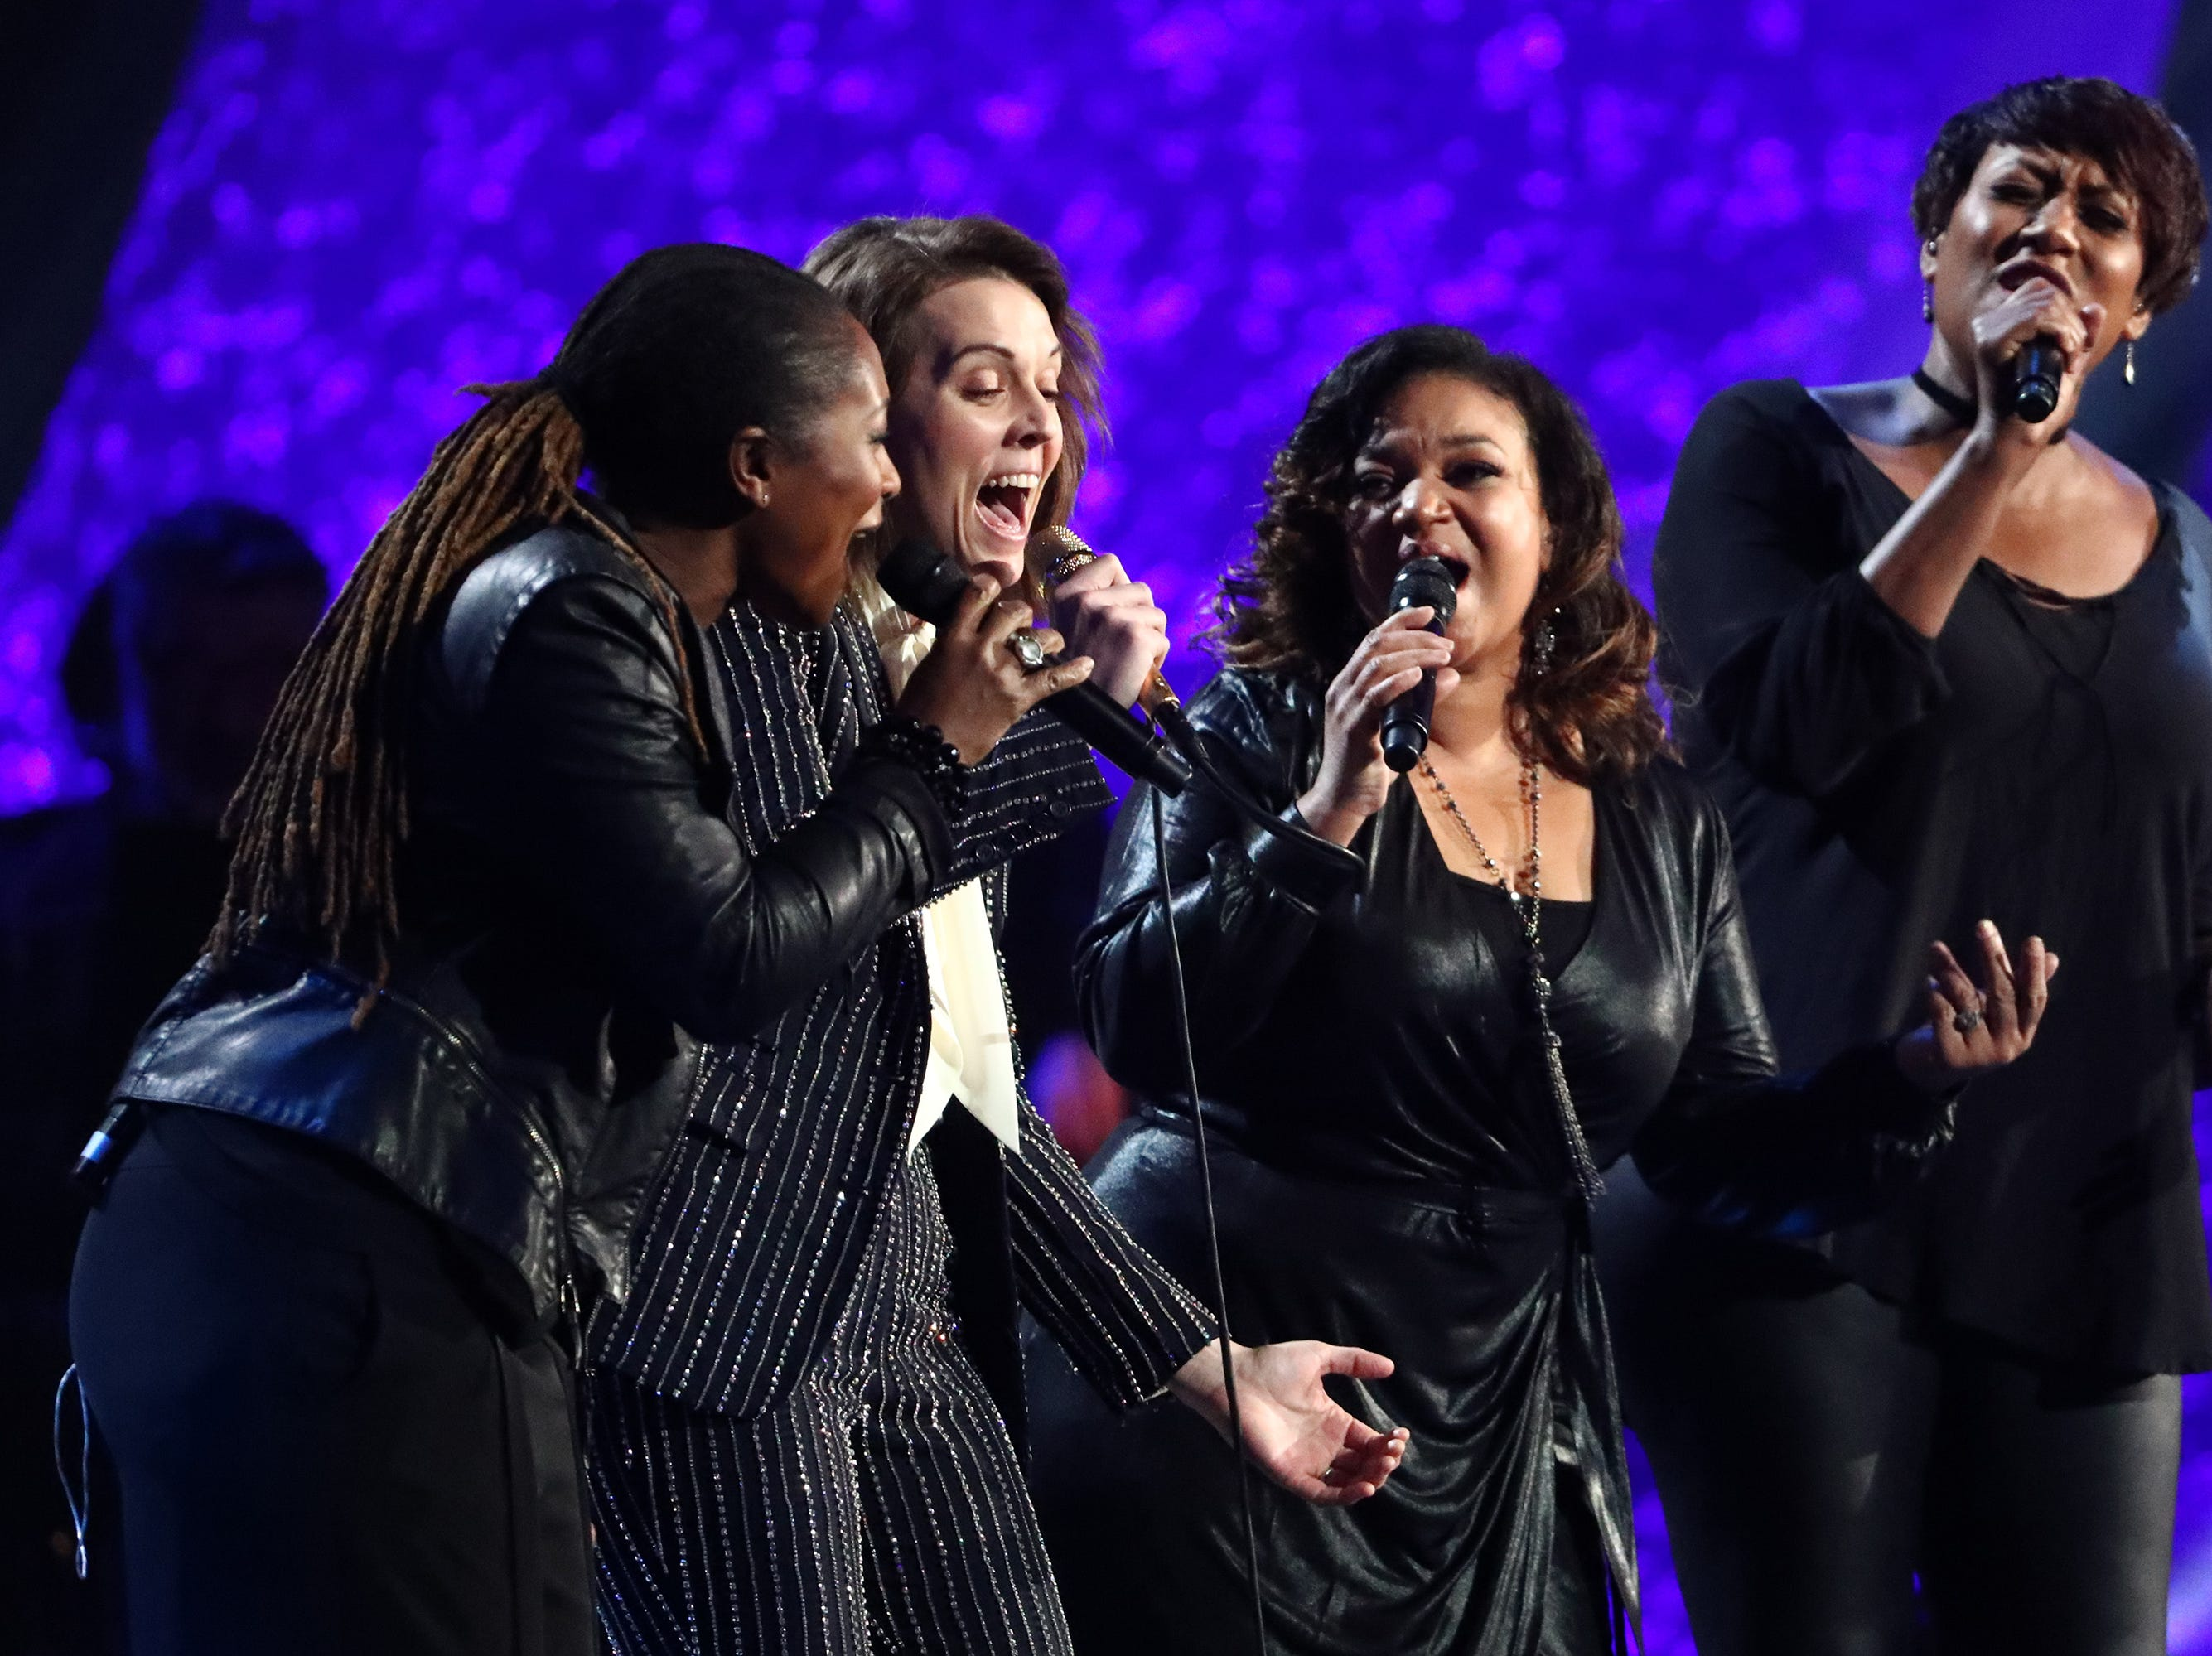 """LOS ANGELES, CA - JANUARY 13:  Brandi Carlile (second from left) performs at """"Aretha! A Grammy Celebration For the Queen Of Soul"""" at the Shrine Auditorium on Jan. 13, 2019, in Los Angeles, Calif."""